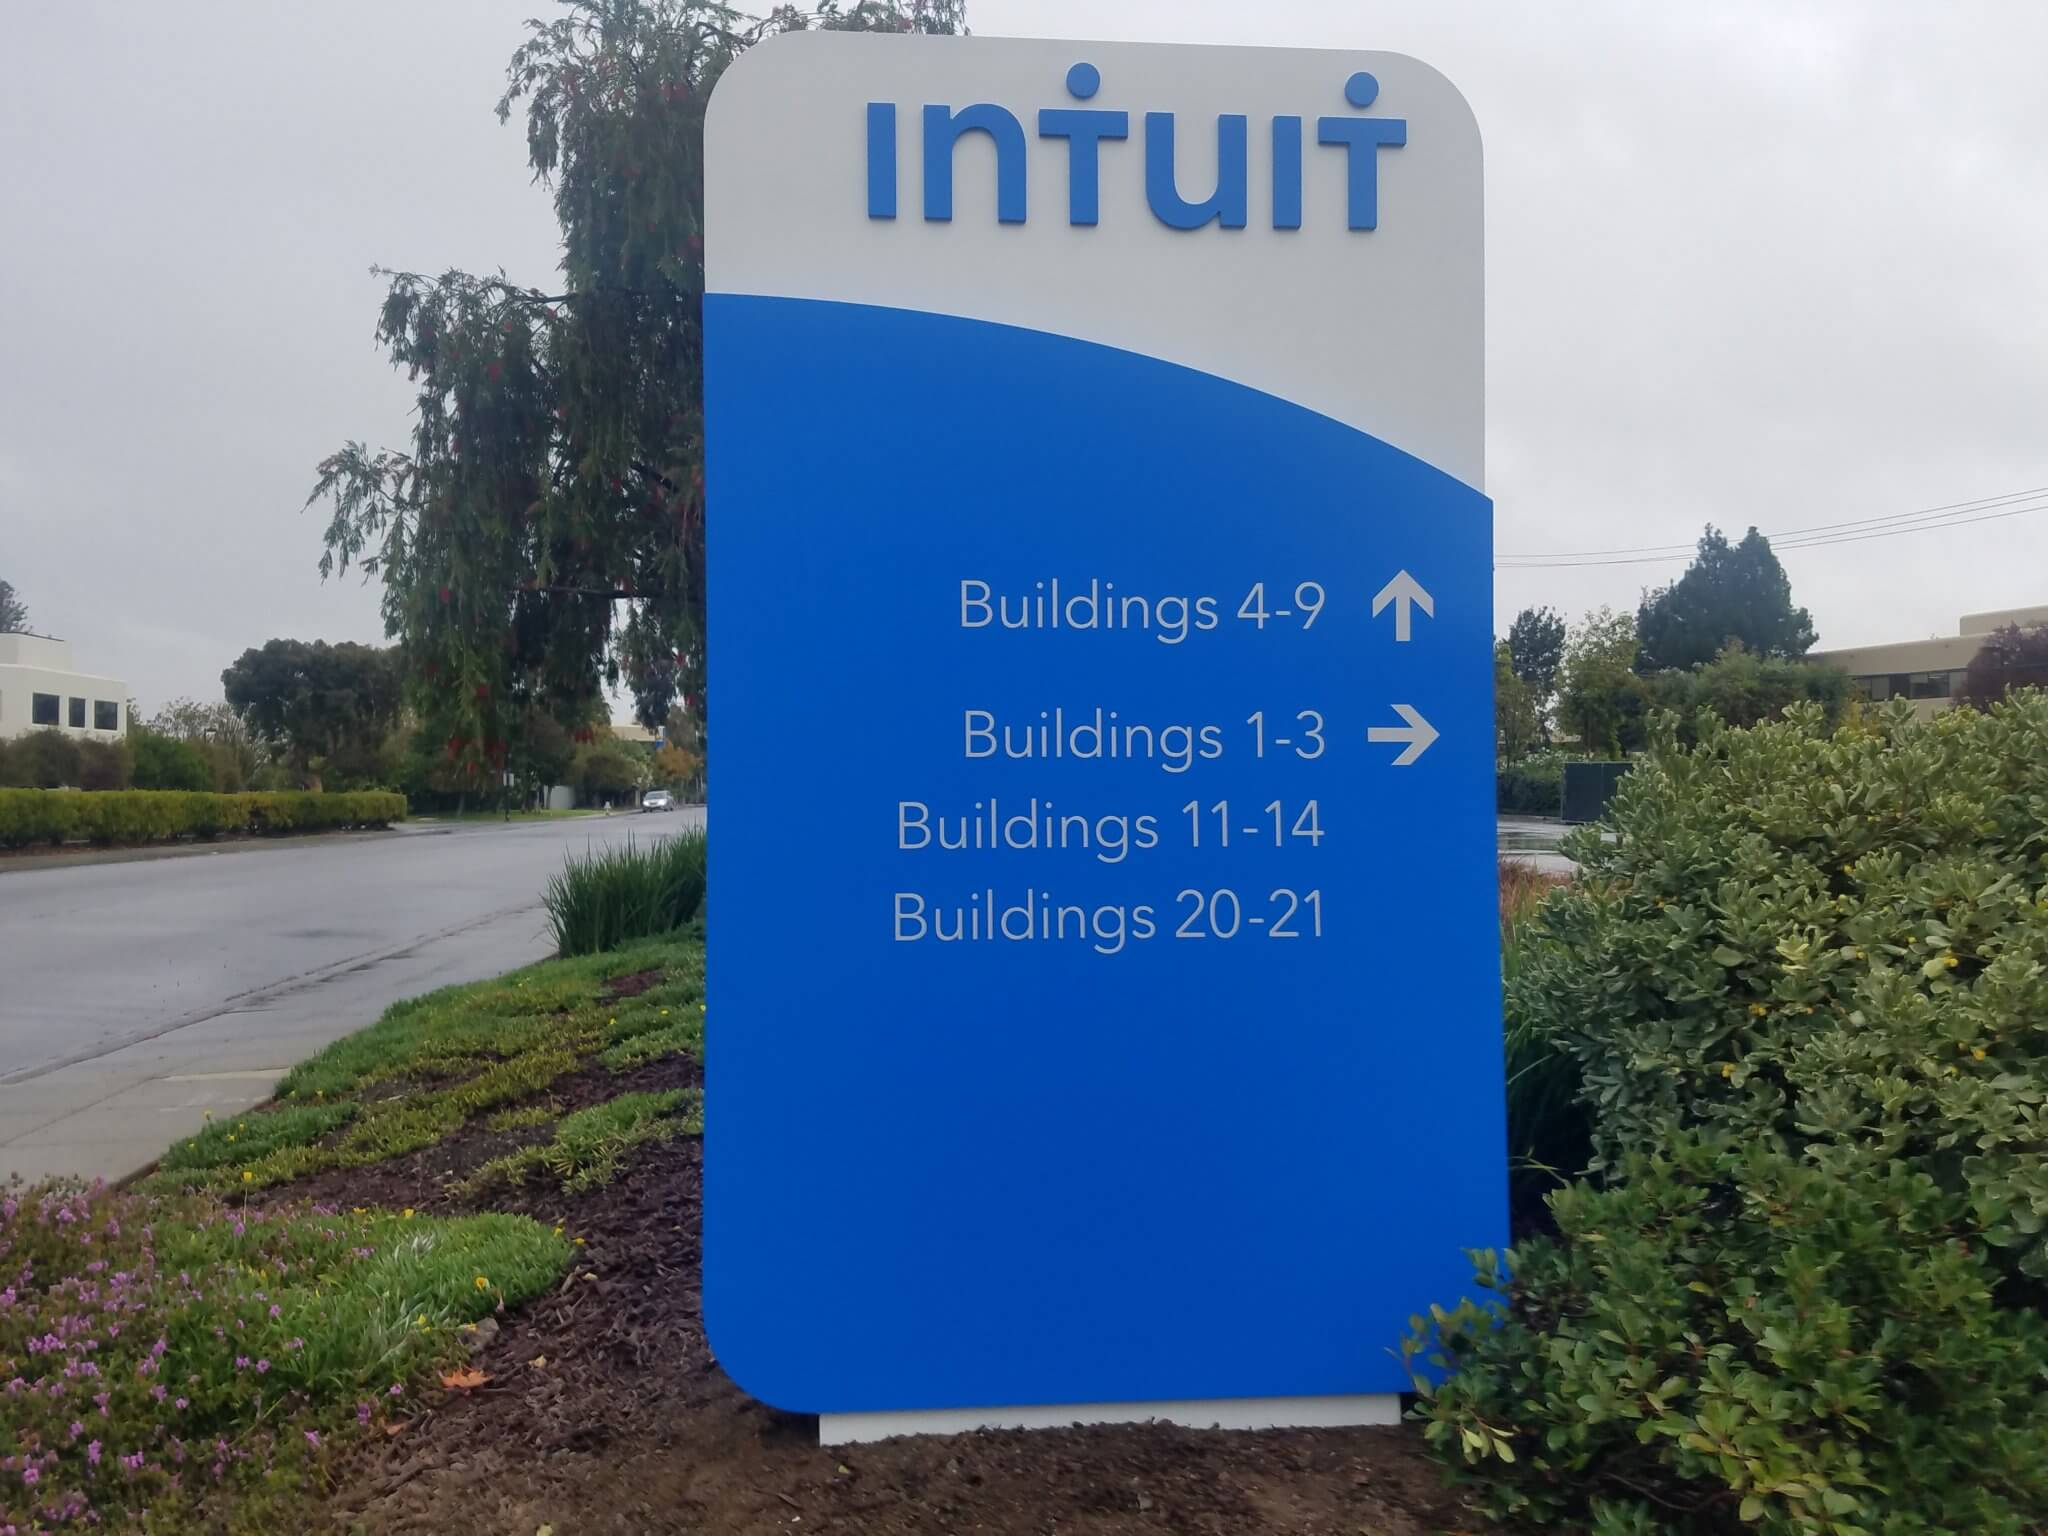 Newly fabricated Intuit monument sign, installed in Mountain View, CA